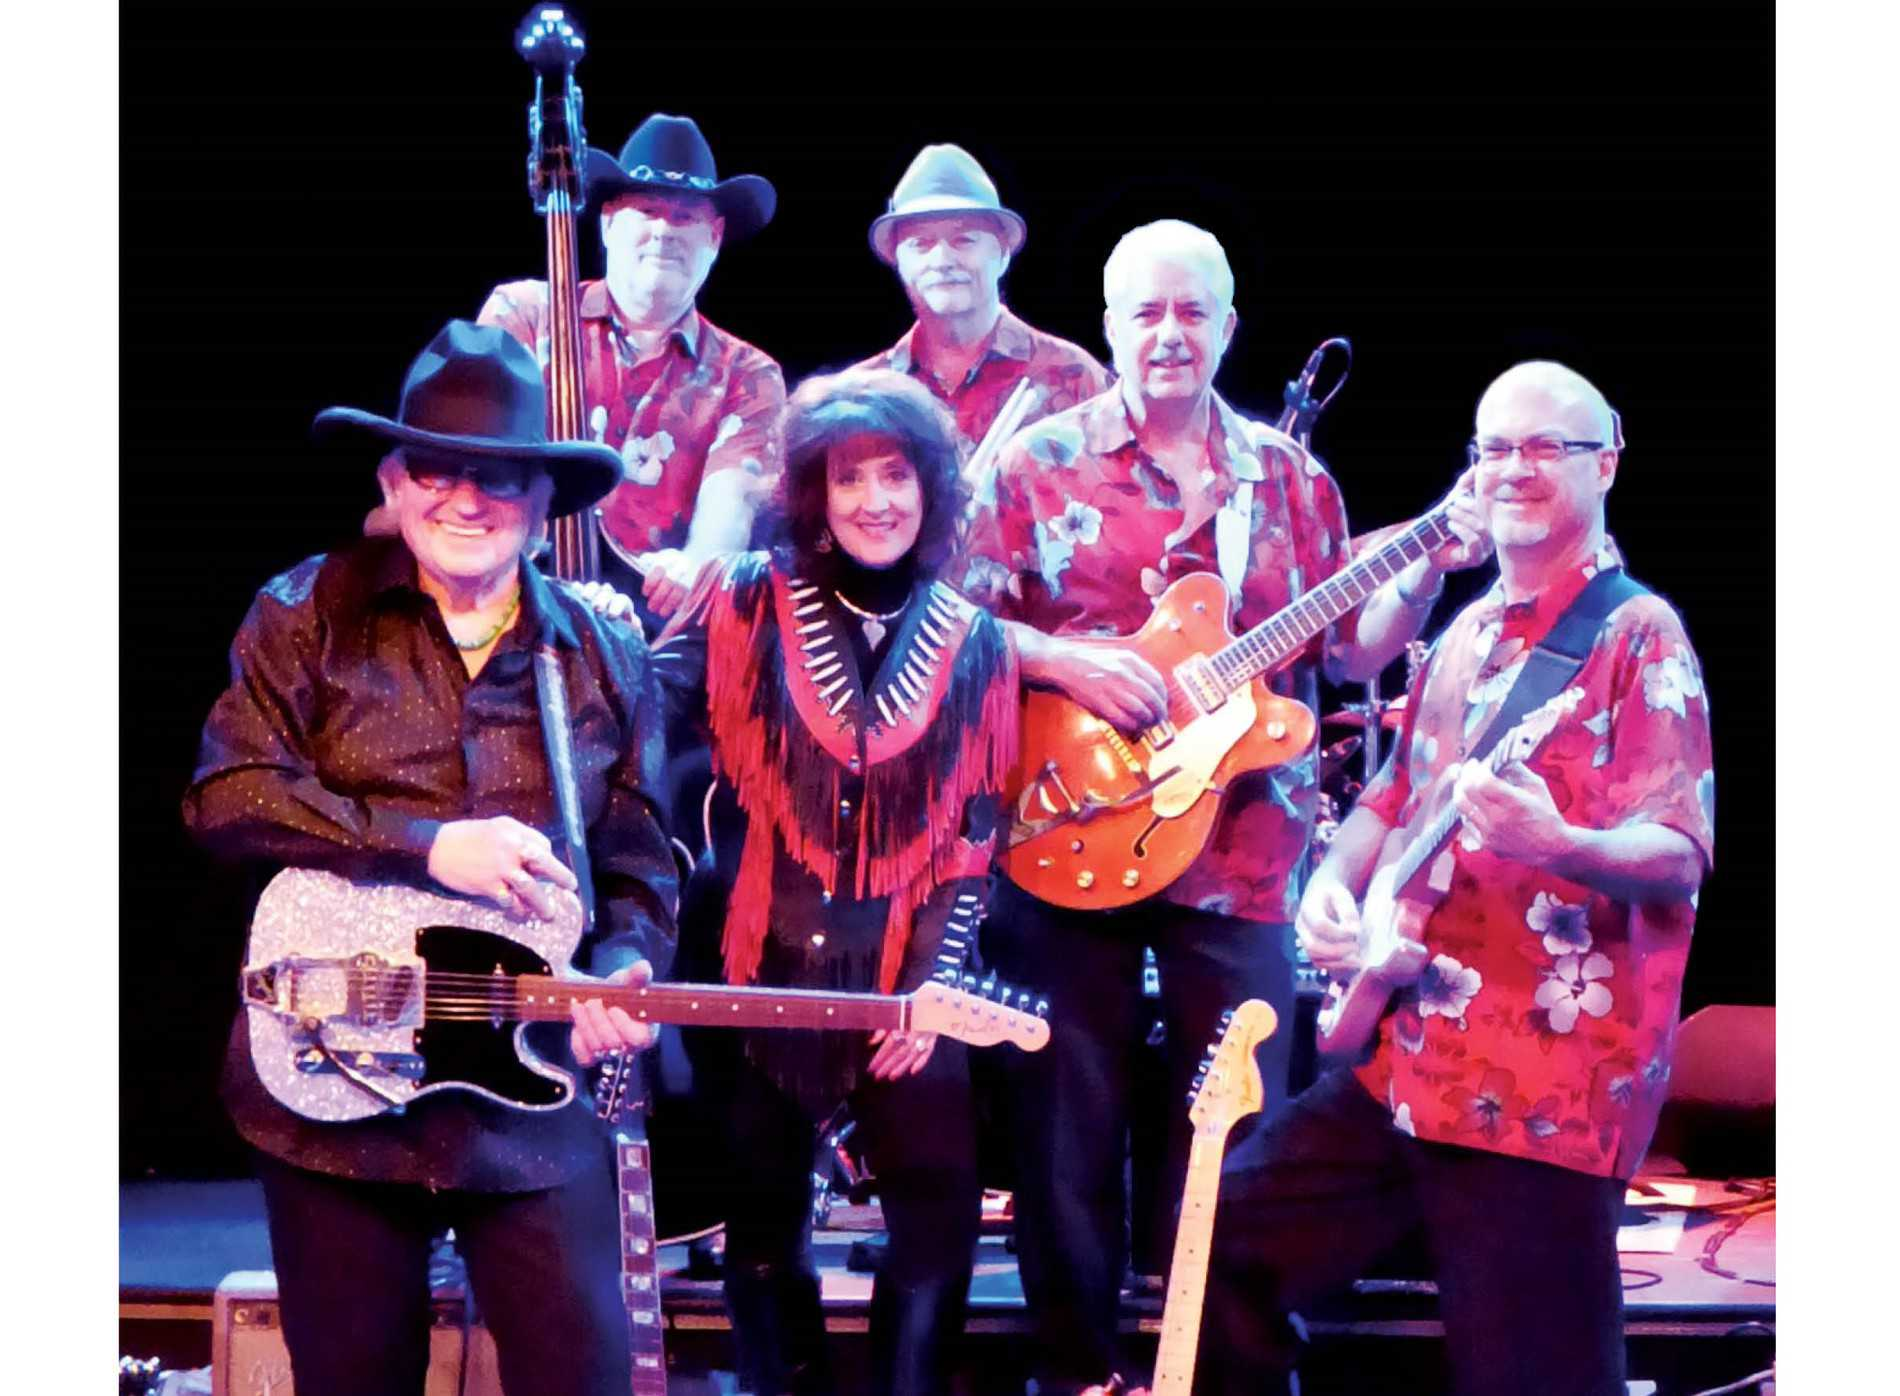 Sherwin & Pam Linton & The Cotton Kings - Classic Country Music